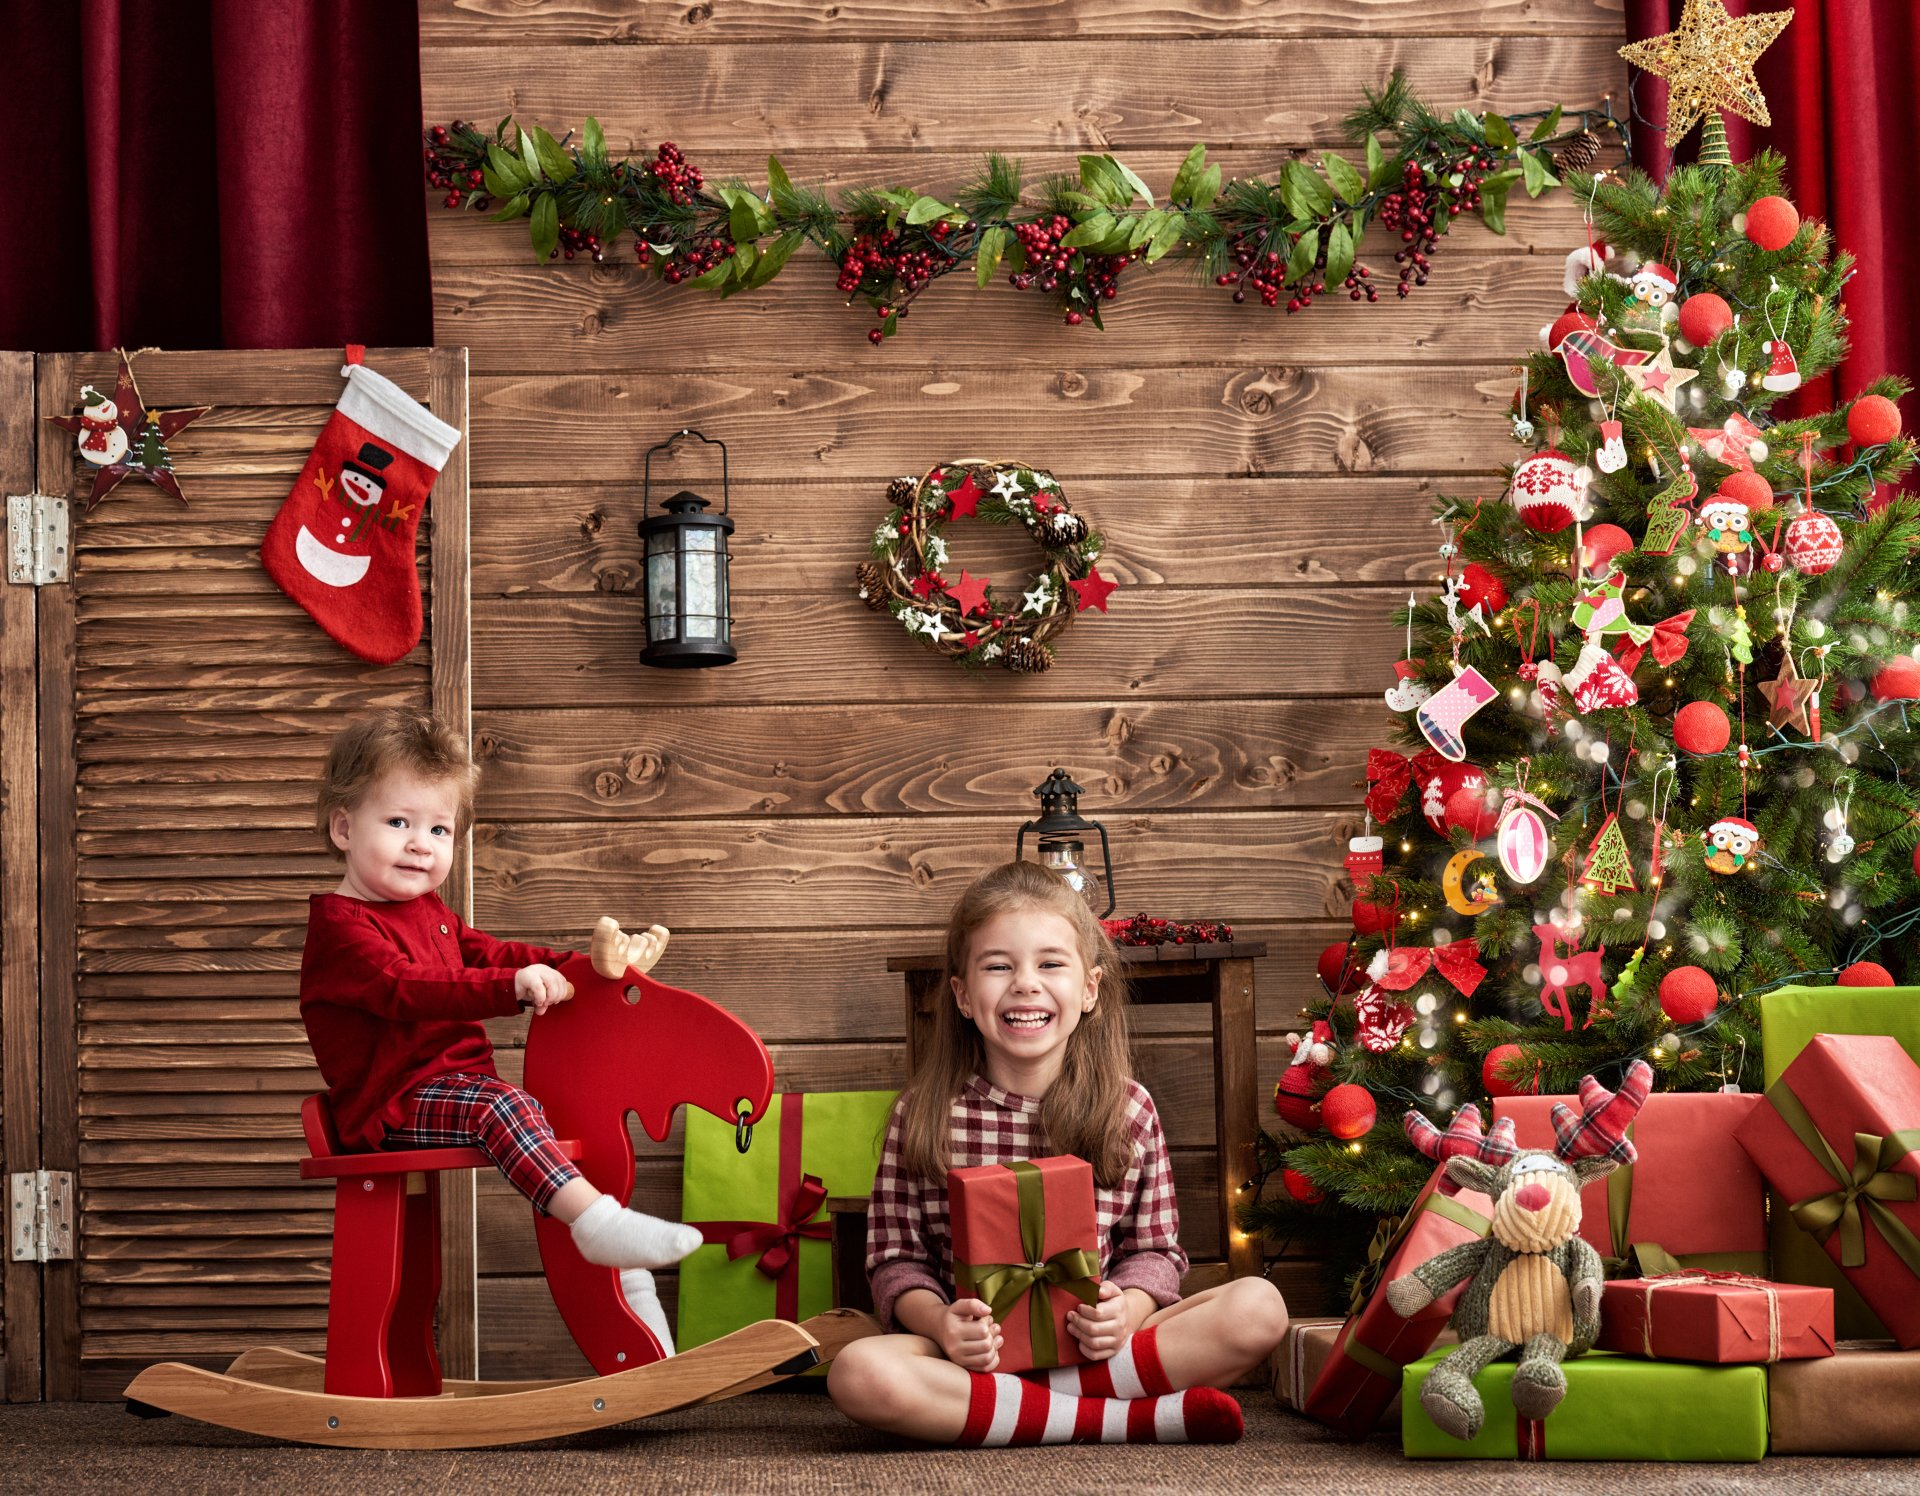 Holiday - Christmas  Christmas Tree Gift Stuffed Animal Child Girl Smile Little Girl Boy Little Boy Wallpaper